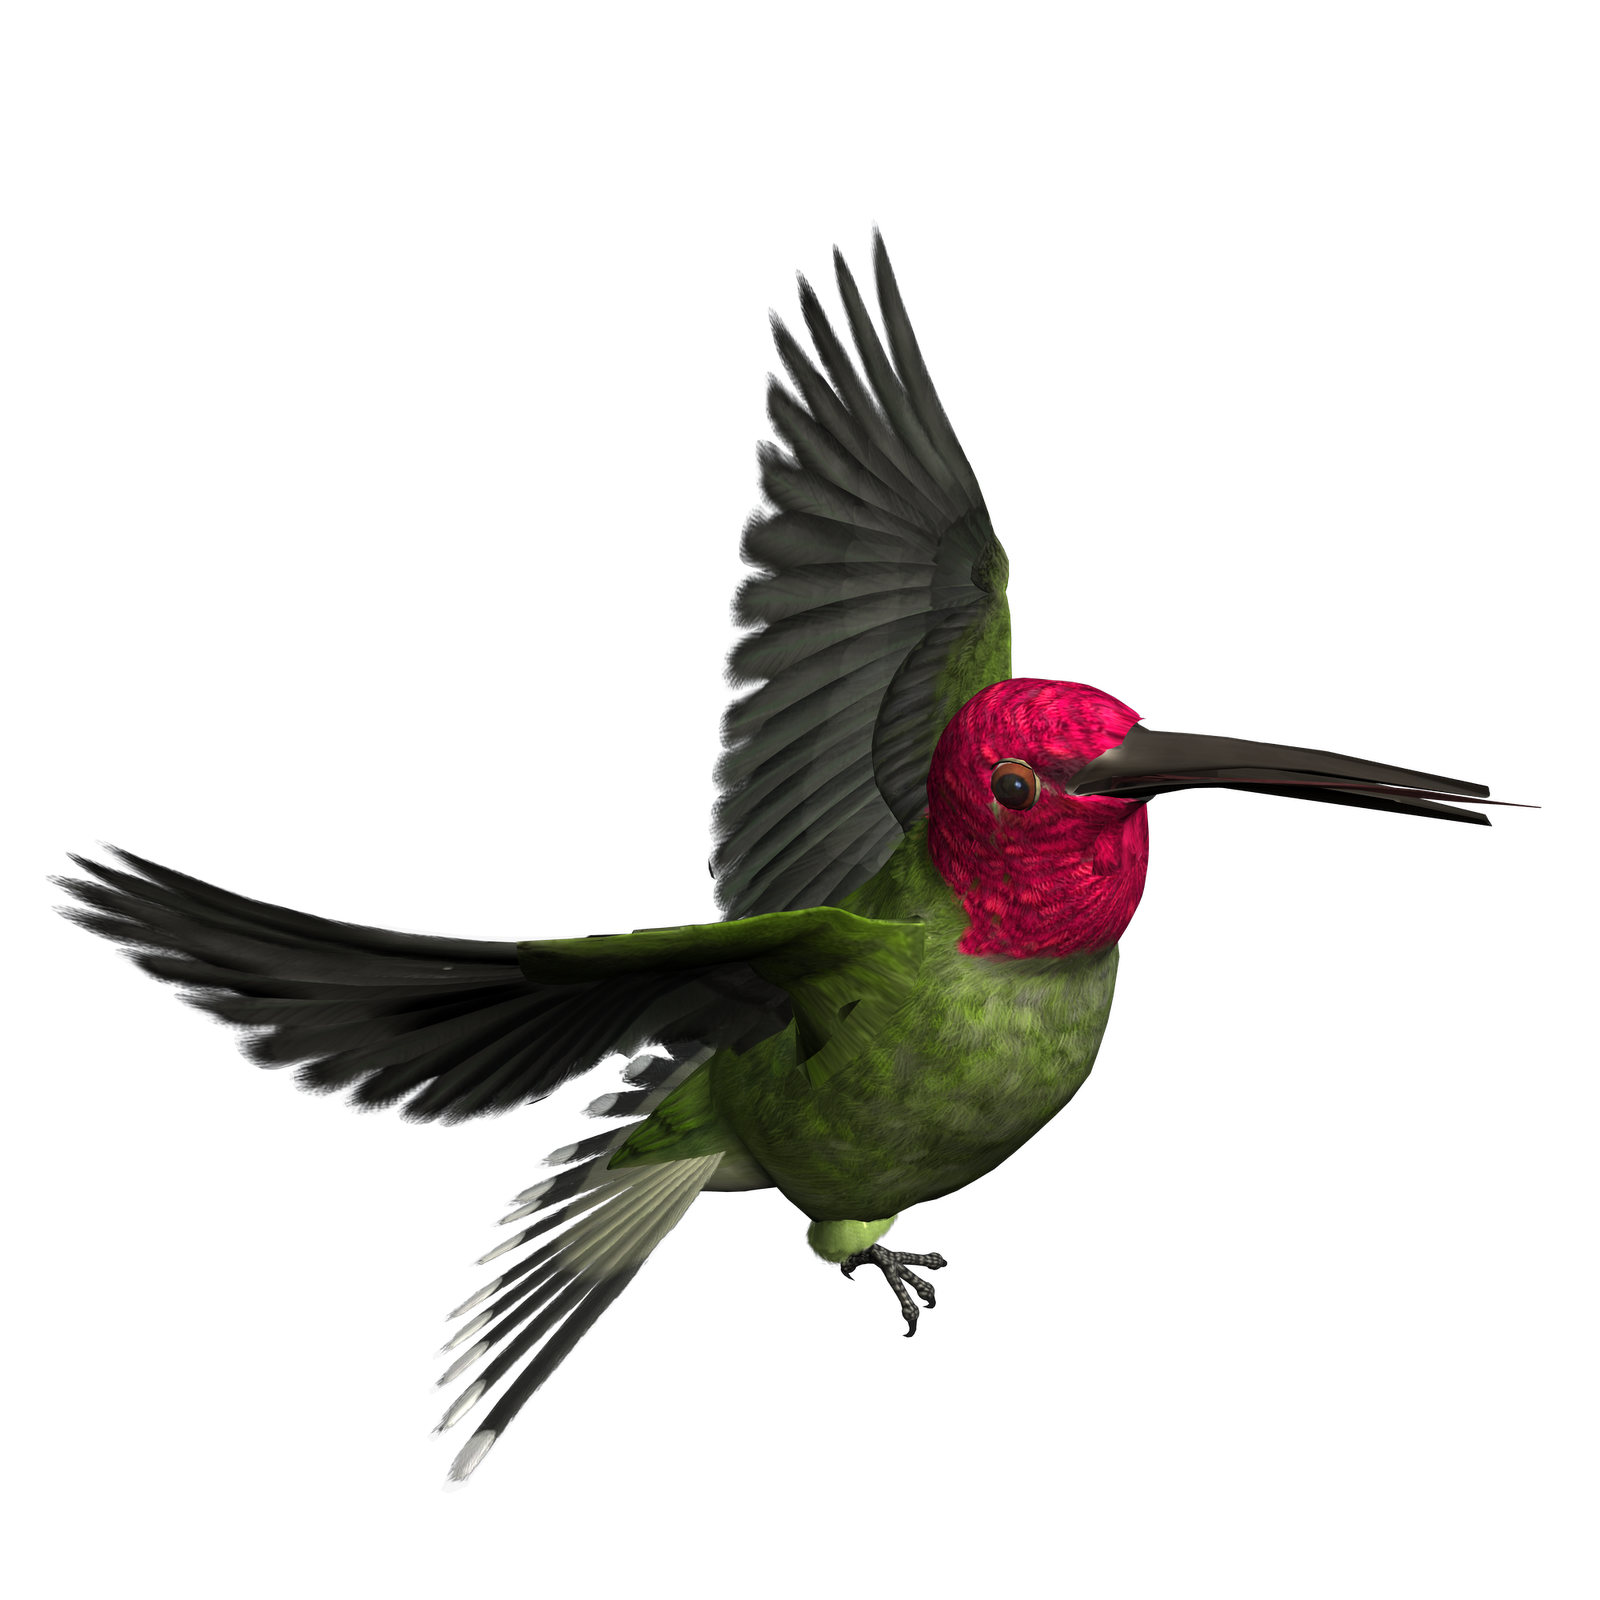 Hummingbird clipart realistic animal. Birds png images free